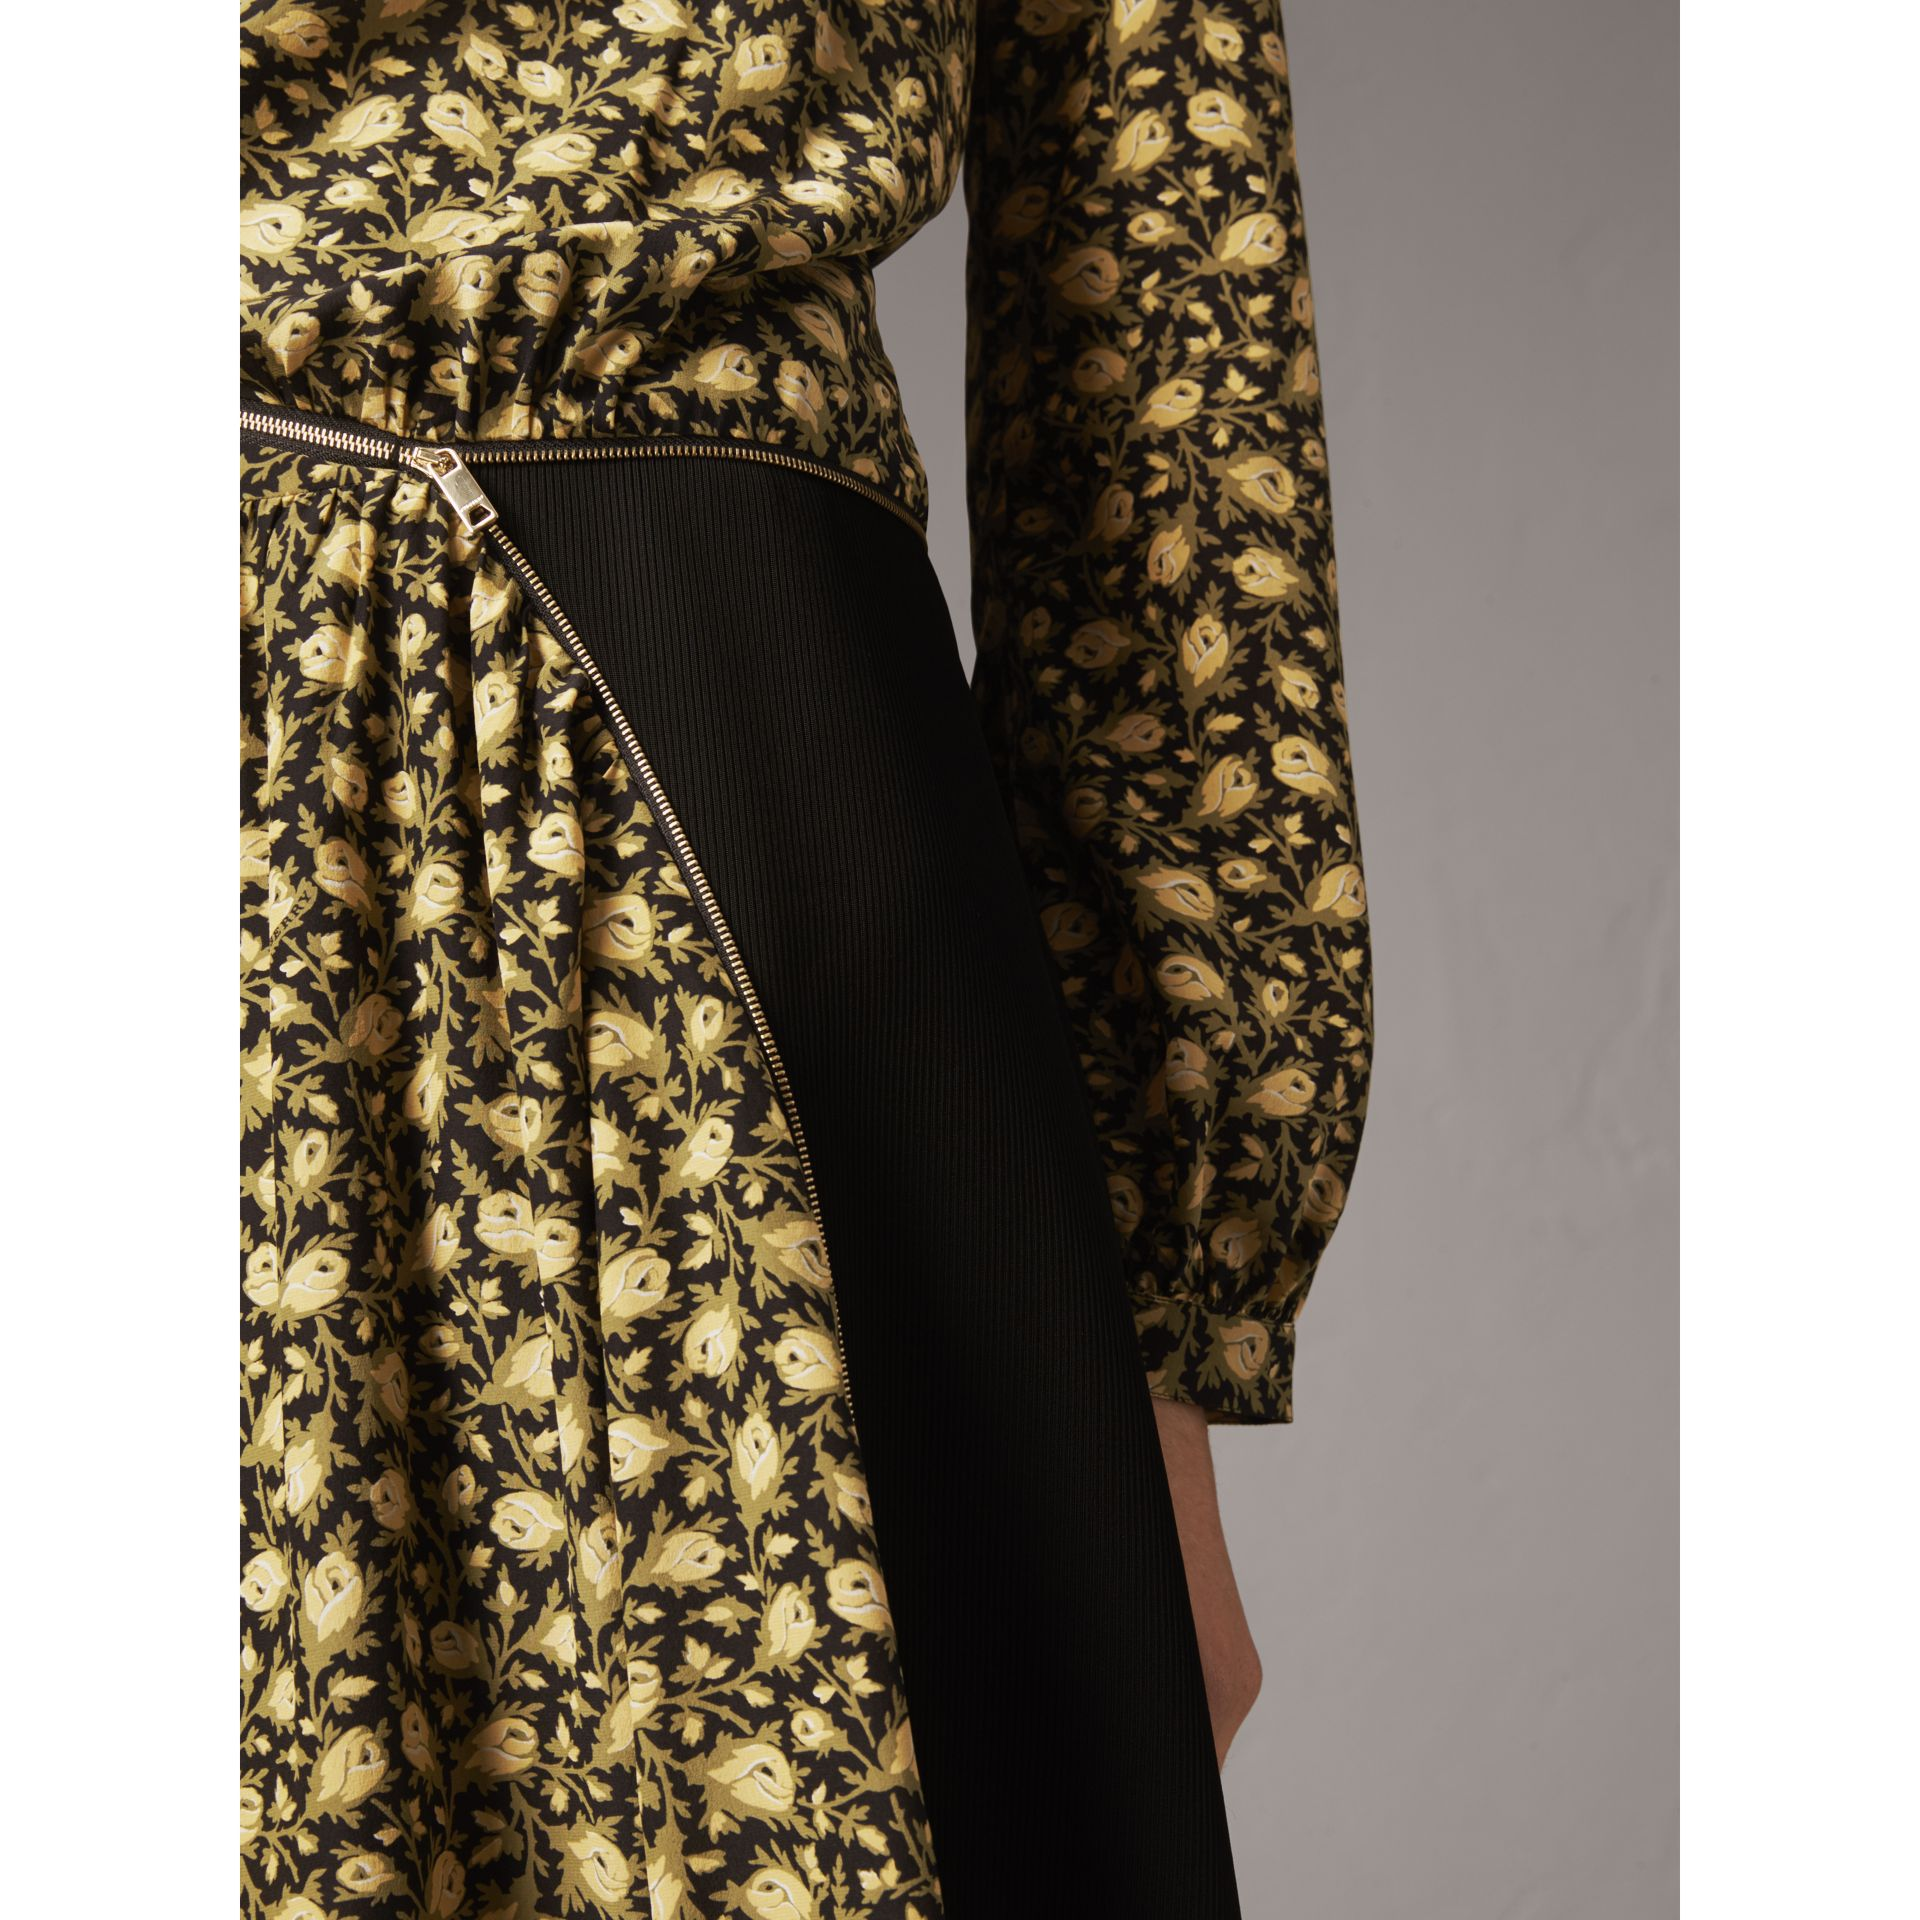 Zip Detail Floral Silk Dress in Pale Saffron Yellow - Women | Burberry Australia - gallery image 2